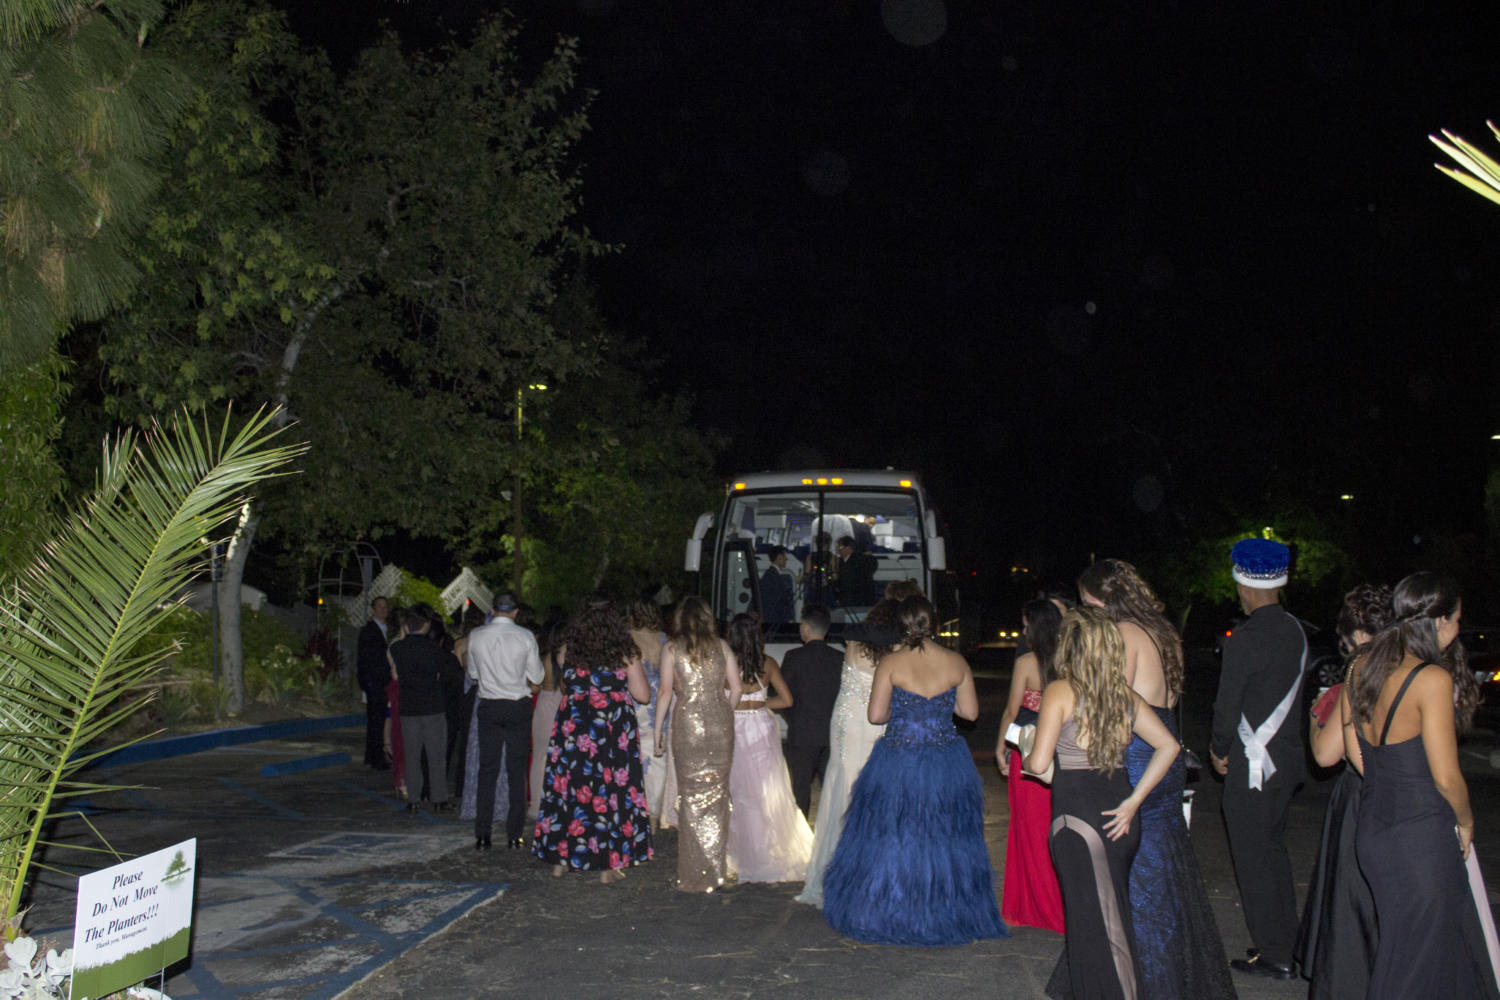 Students wait in line to depart on charter buses towards the end of Prom.